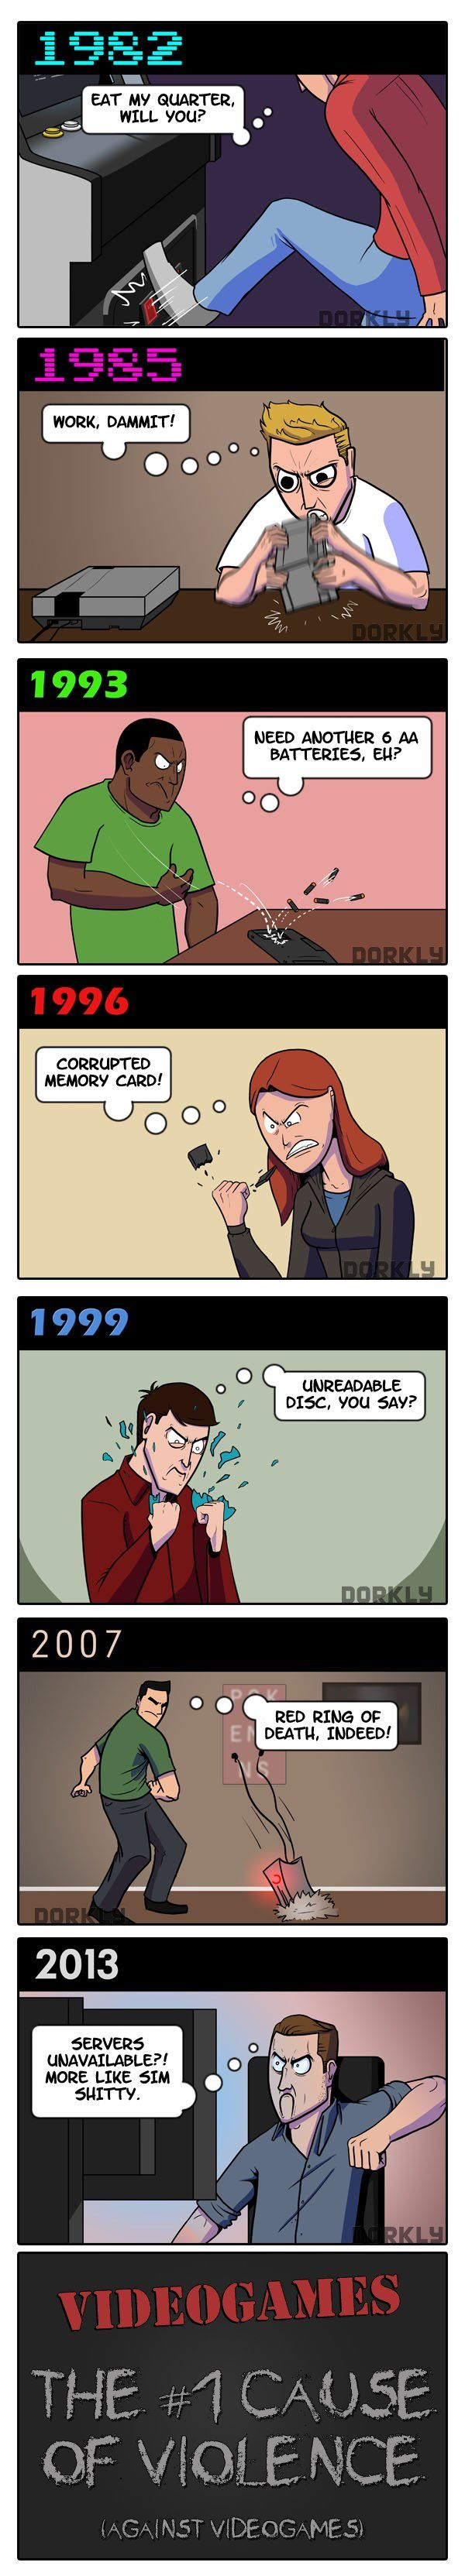 Dorkly Comic – Videogames: A History of Violence [Comic] hahahahahahahahahahaha thats how we become violent our gaming rage not the game itself